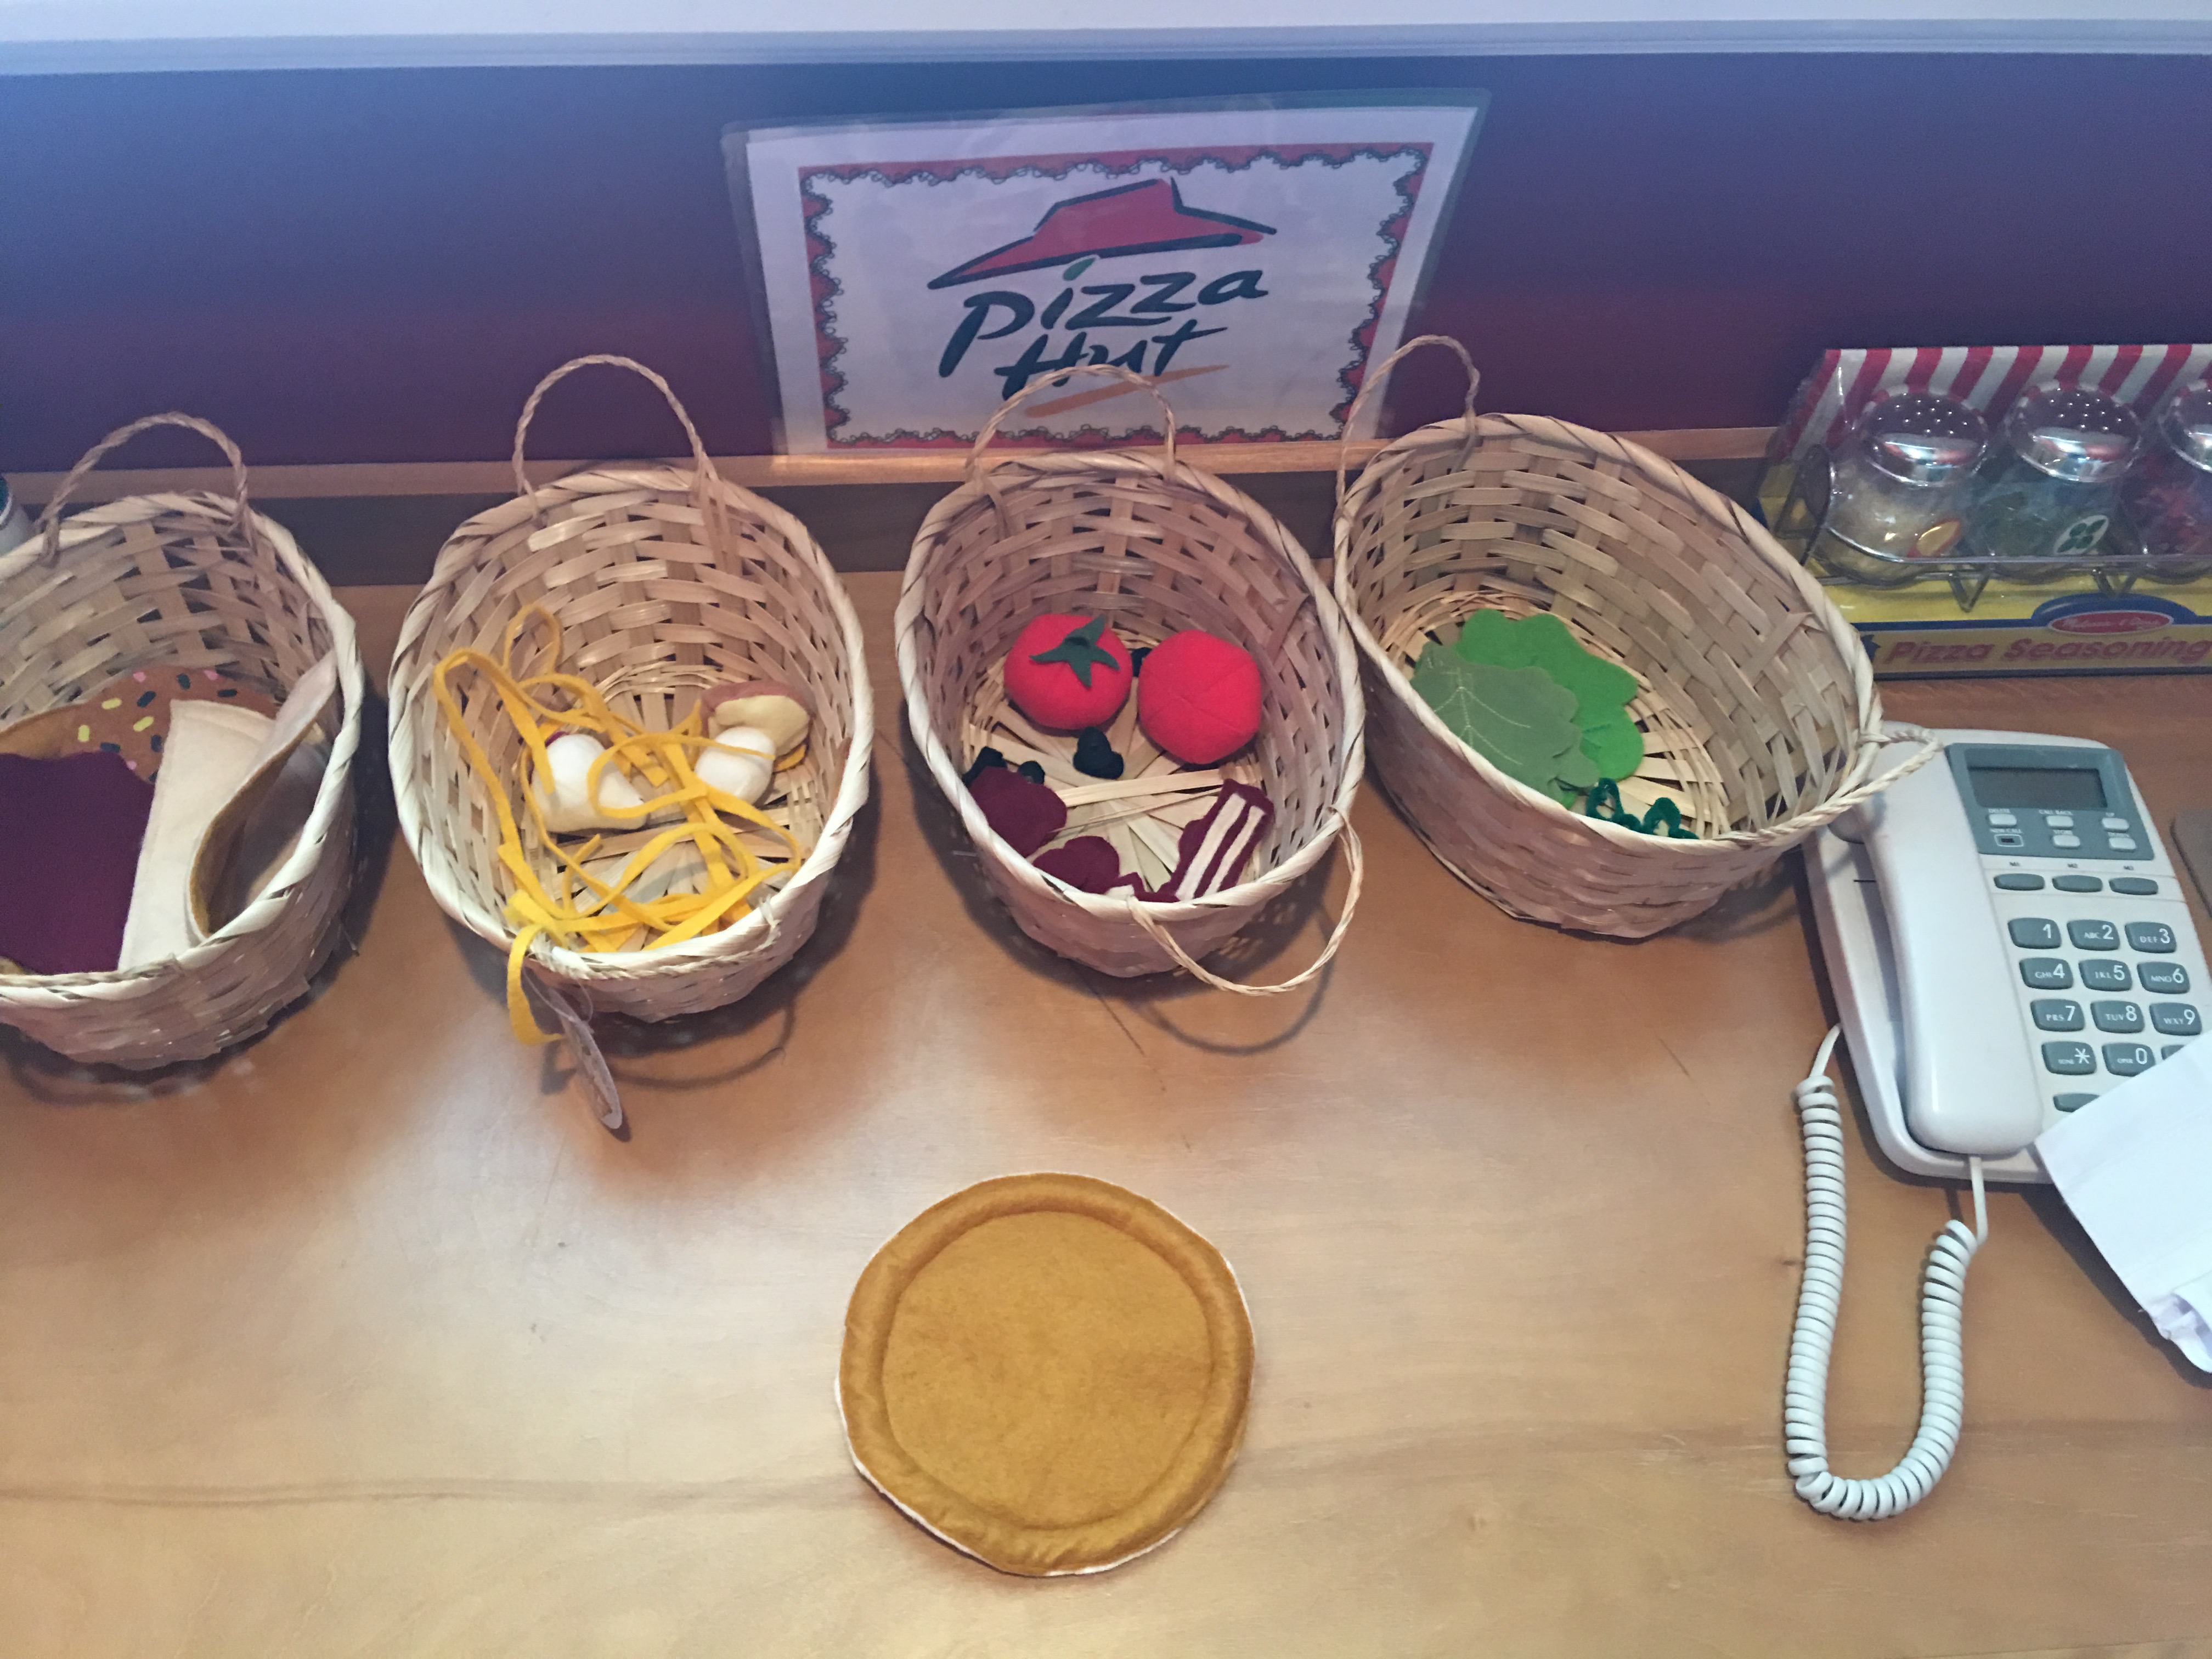 Pizza Dramatic Play: It's great to get the kids involved in cooking for real in the kitchen but replicating some of the food items for dramatic play, allows them to continue to act out what they're learning in a safe and fun environment